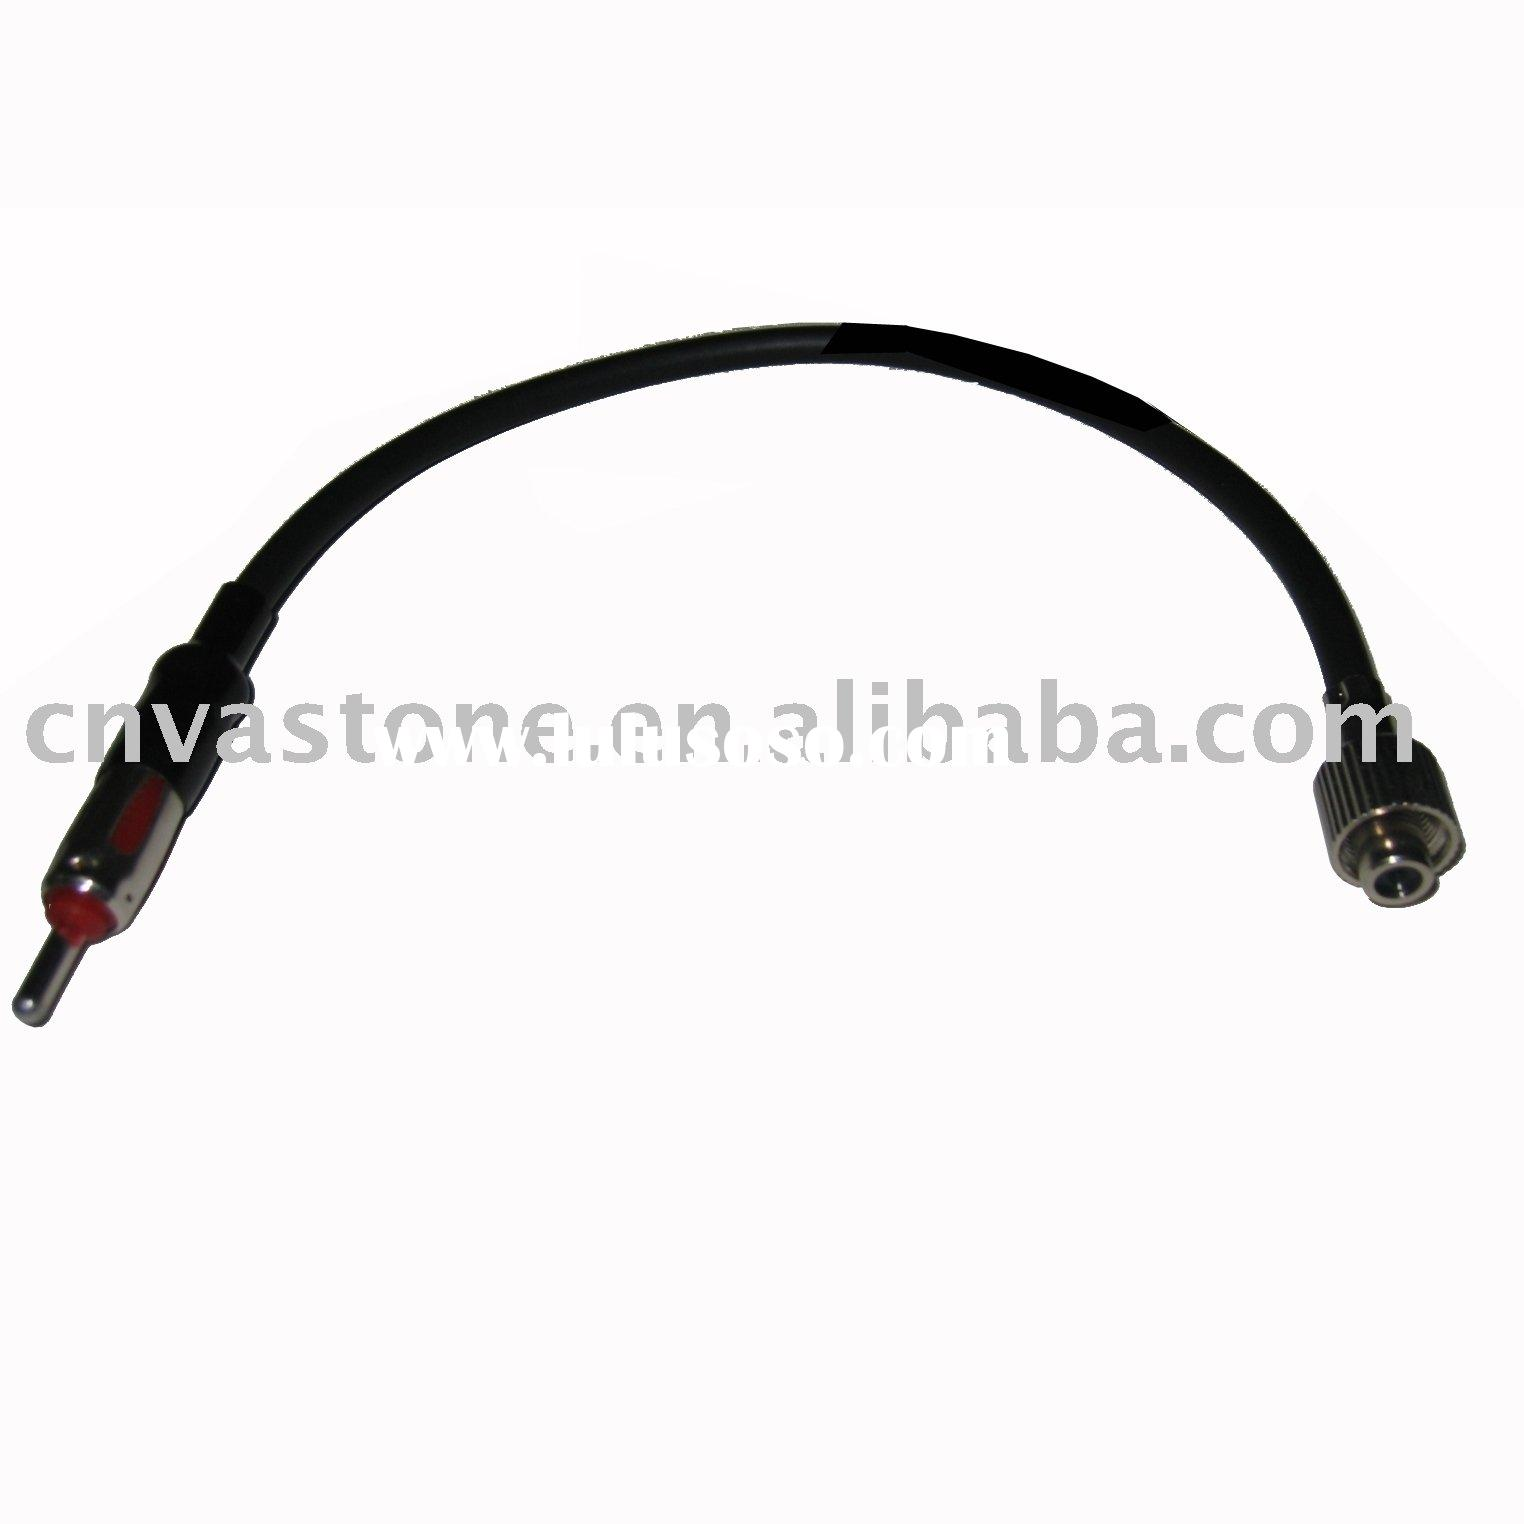 Car Audio Antenna Adapter SJ-BAA30